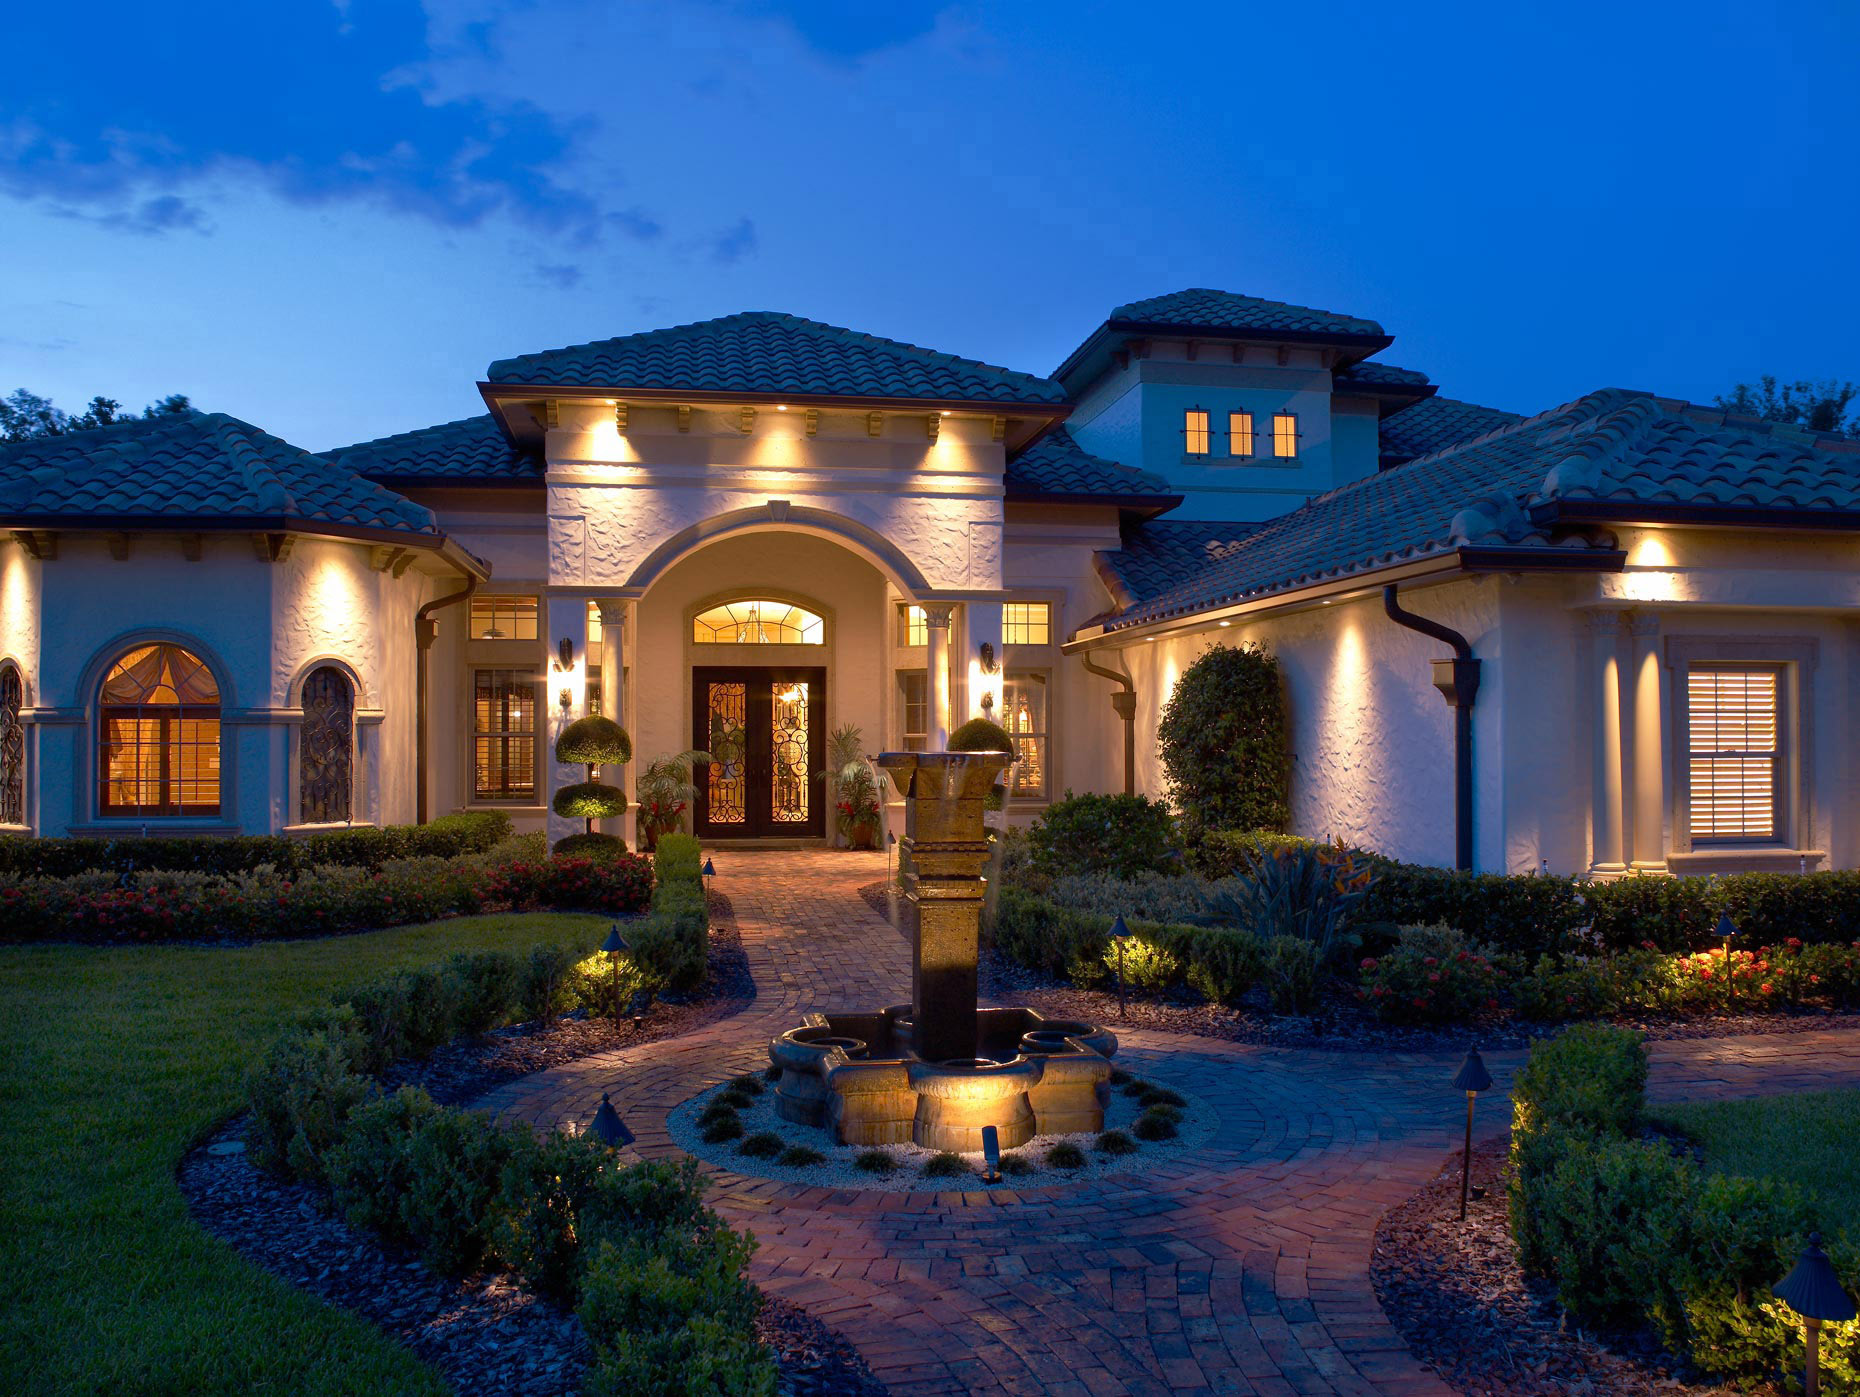 Luxury Home Exterior | Architecture Photography